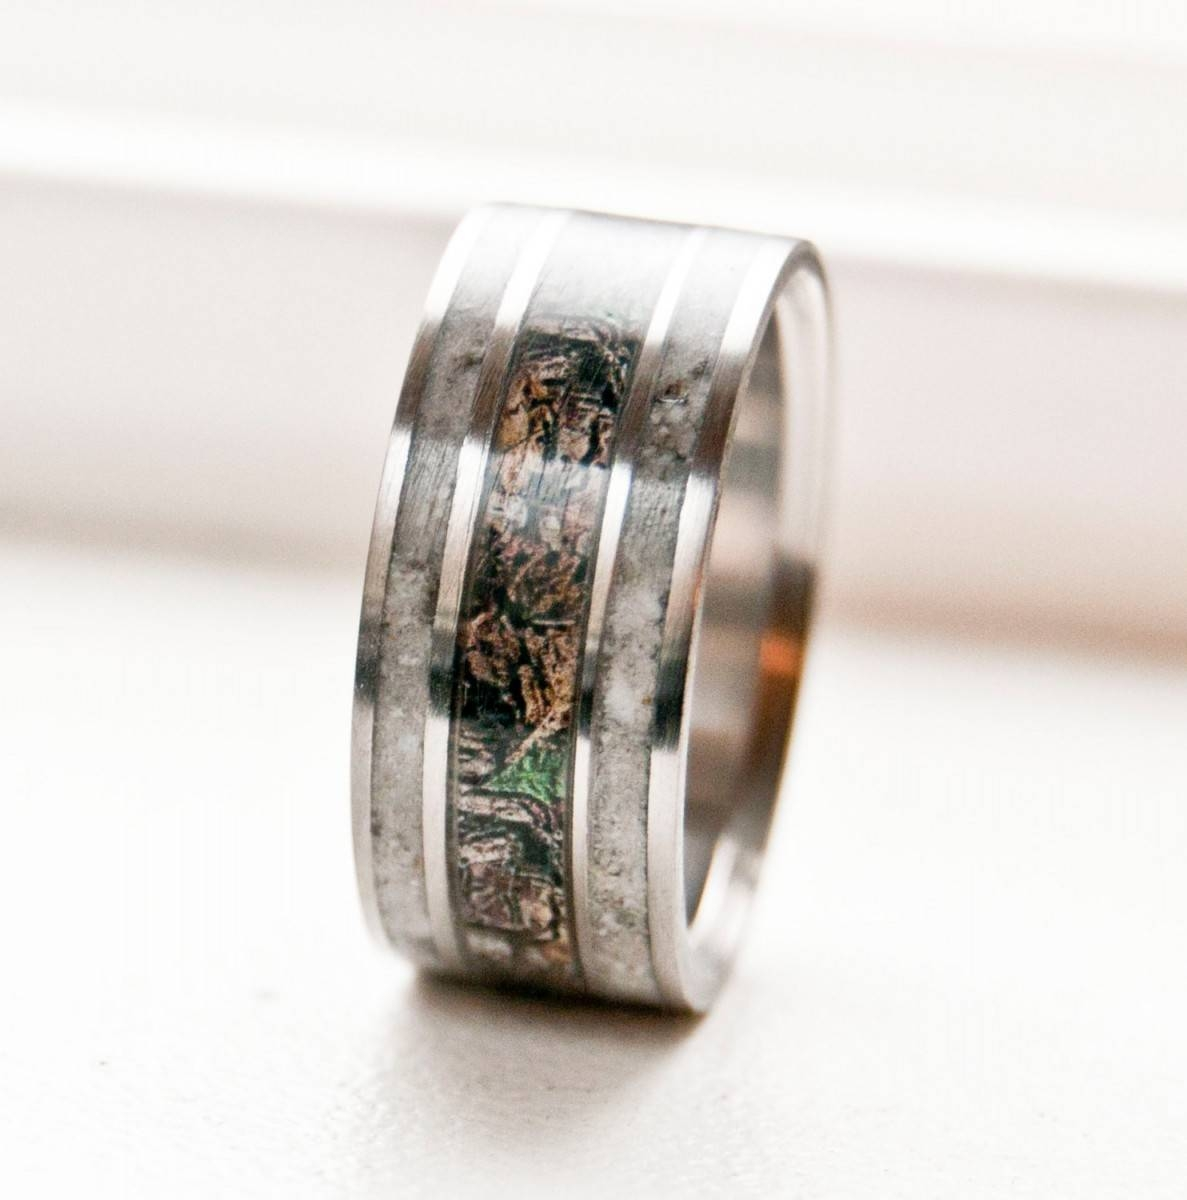 best camo wedding rings for men in camouflage wedding bands for him view 2 of - Camo Wedding Rings For Men